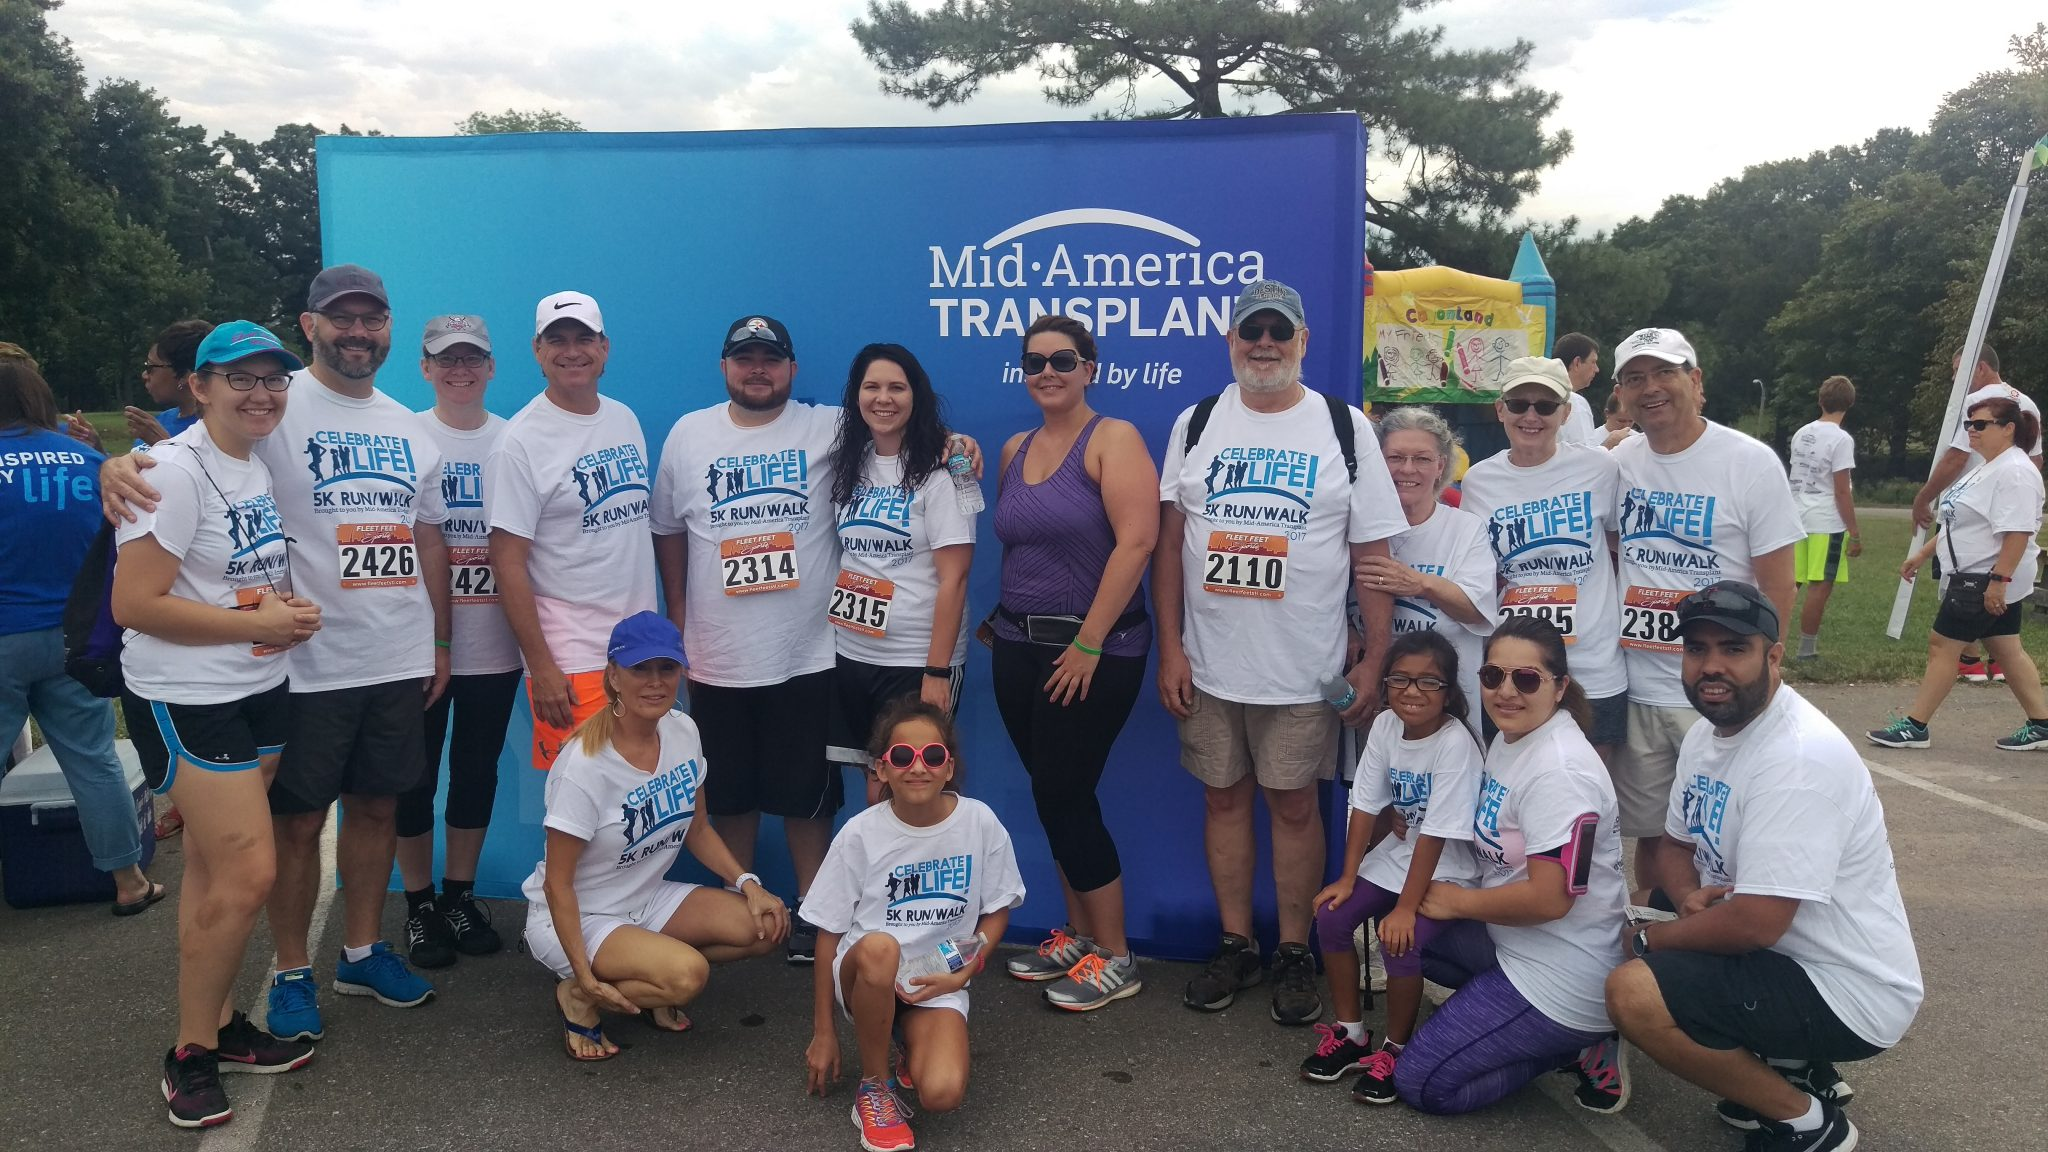 Mid-America Transpant Celebrate Life! 5K Run/Walk